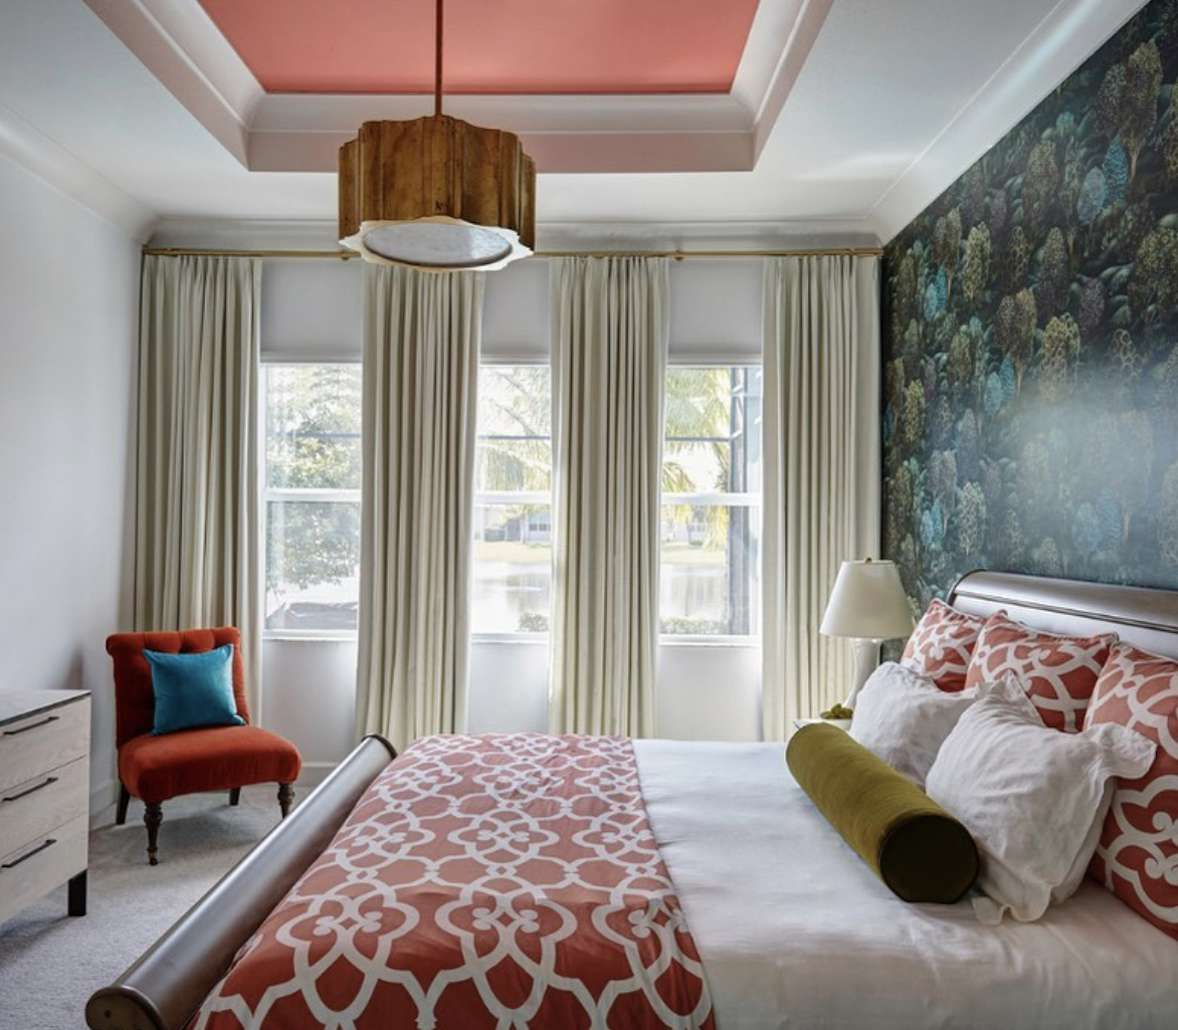 bedroom with blue and green wallpaper, red patten bedspread and pillows, red chair with solid blue pillow in corner